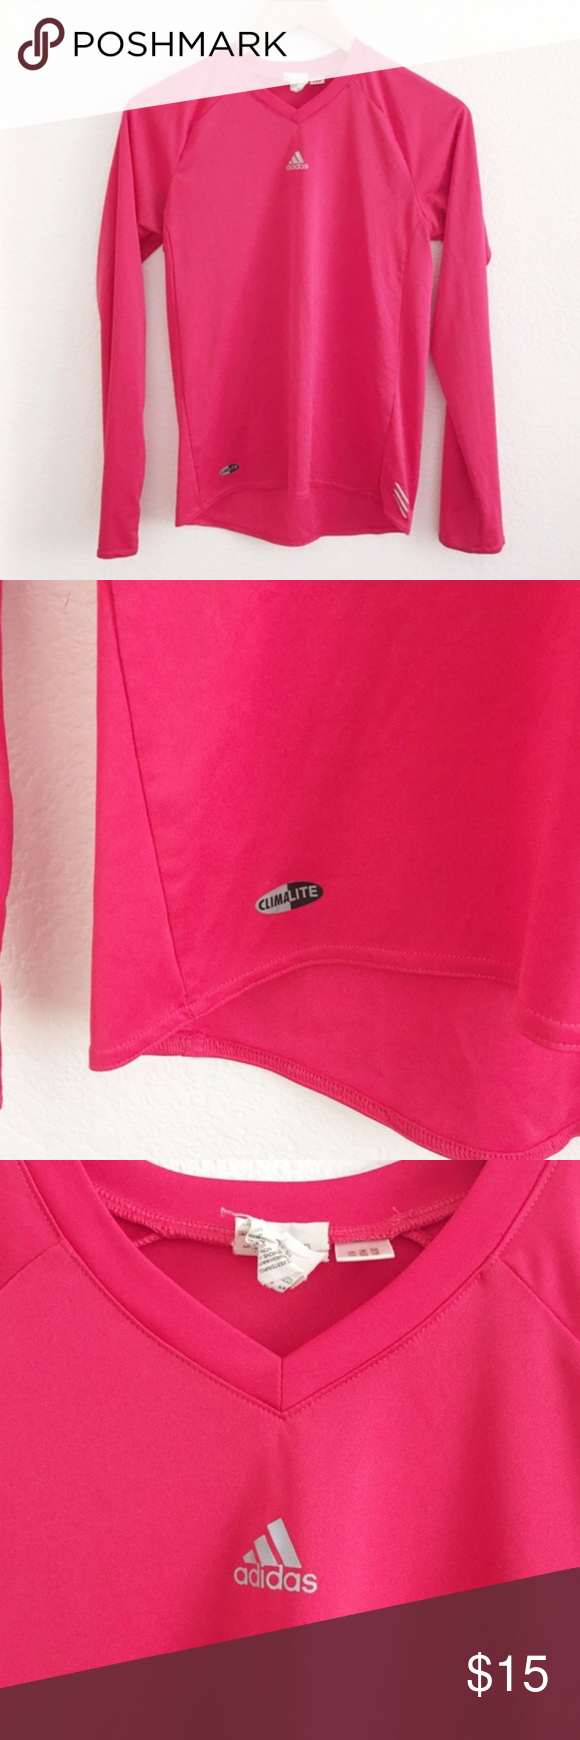 Adorable pink Adidas Climalite pink top Excellent condition! 100% polyester Adidas Tops